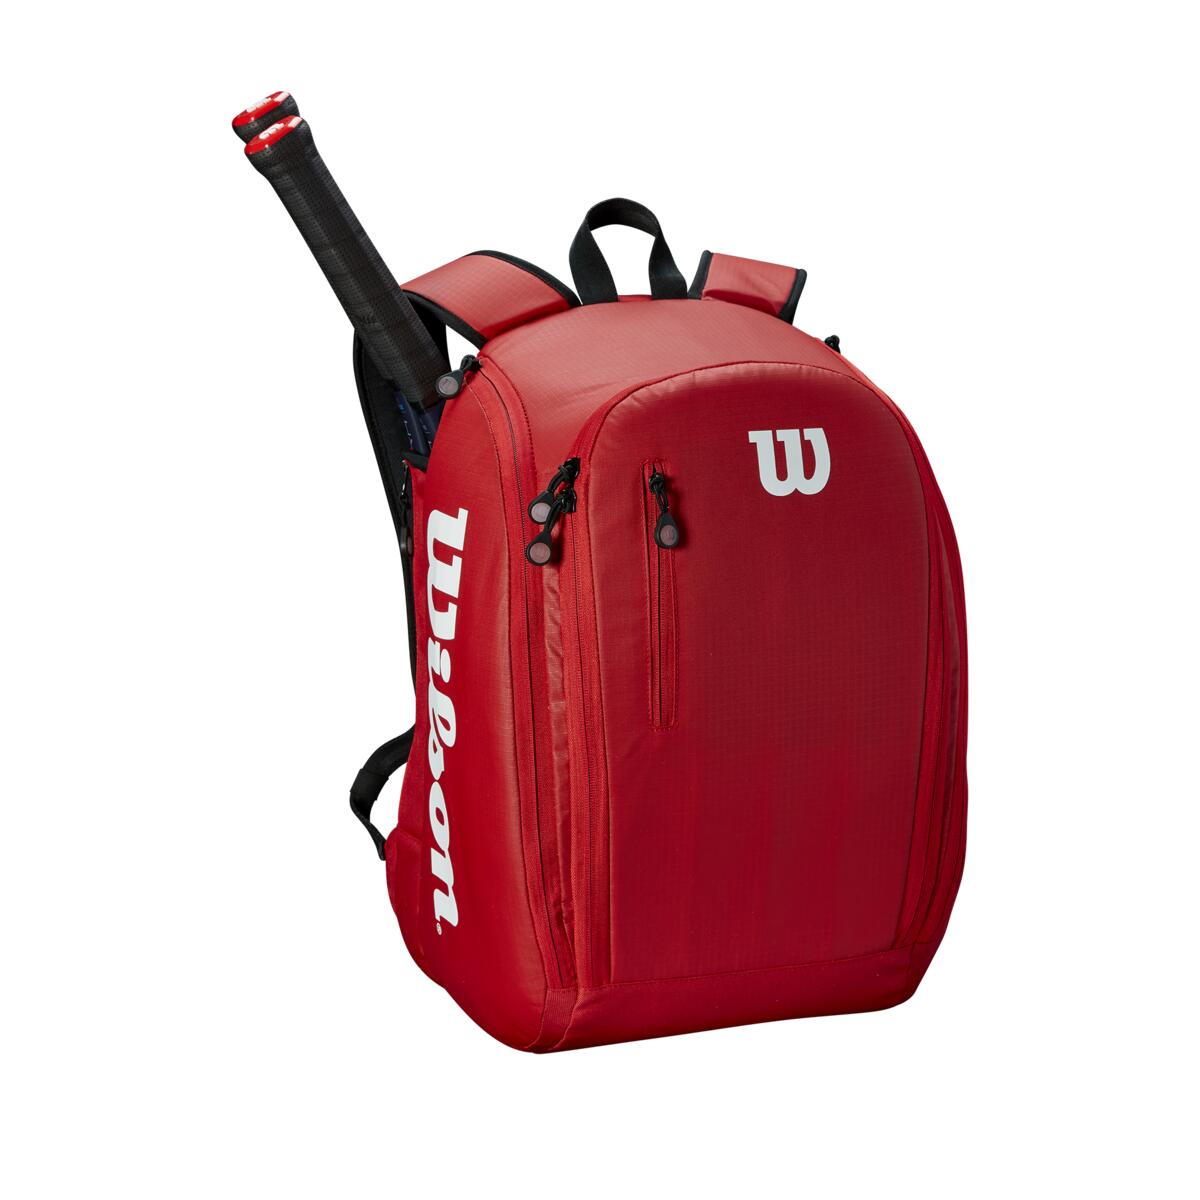 WRZ847996_1_Tour_Backpack_Red_Black_Front_wRacket.png.cq5dam.web.1200.1200